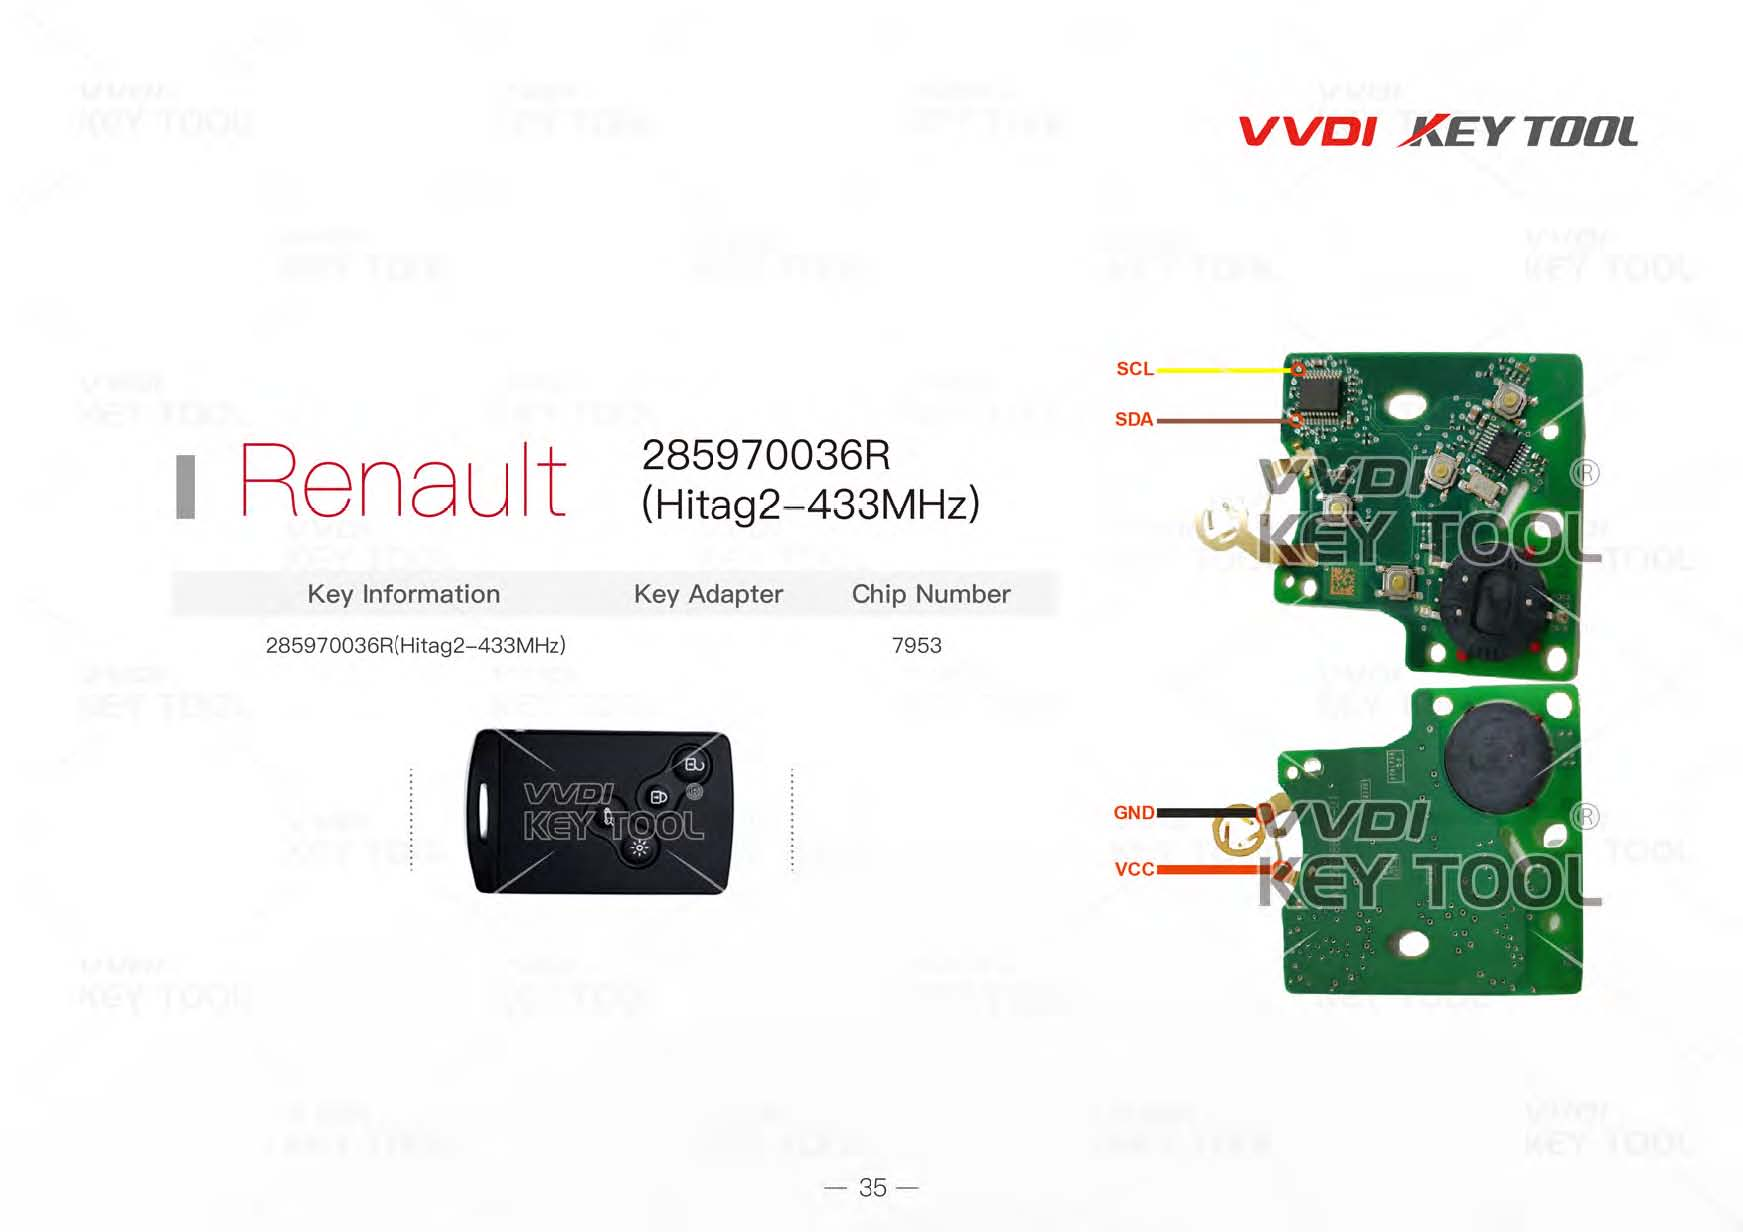 vvdi-key-tool-renew-diagram-35